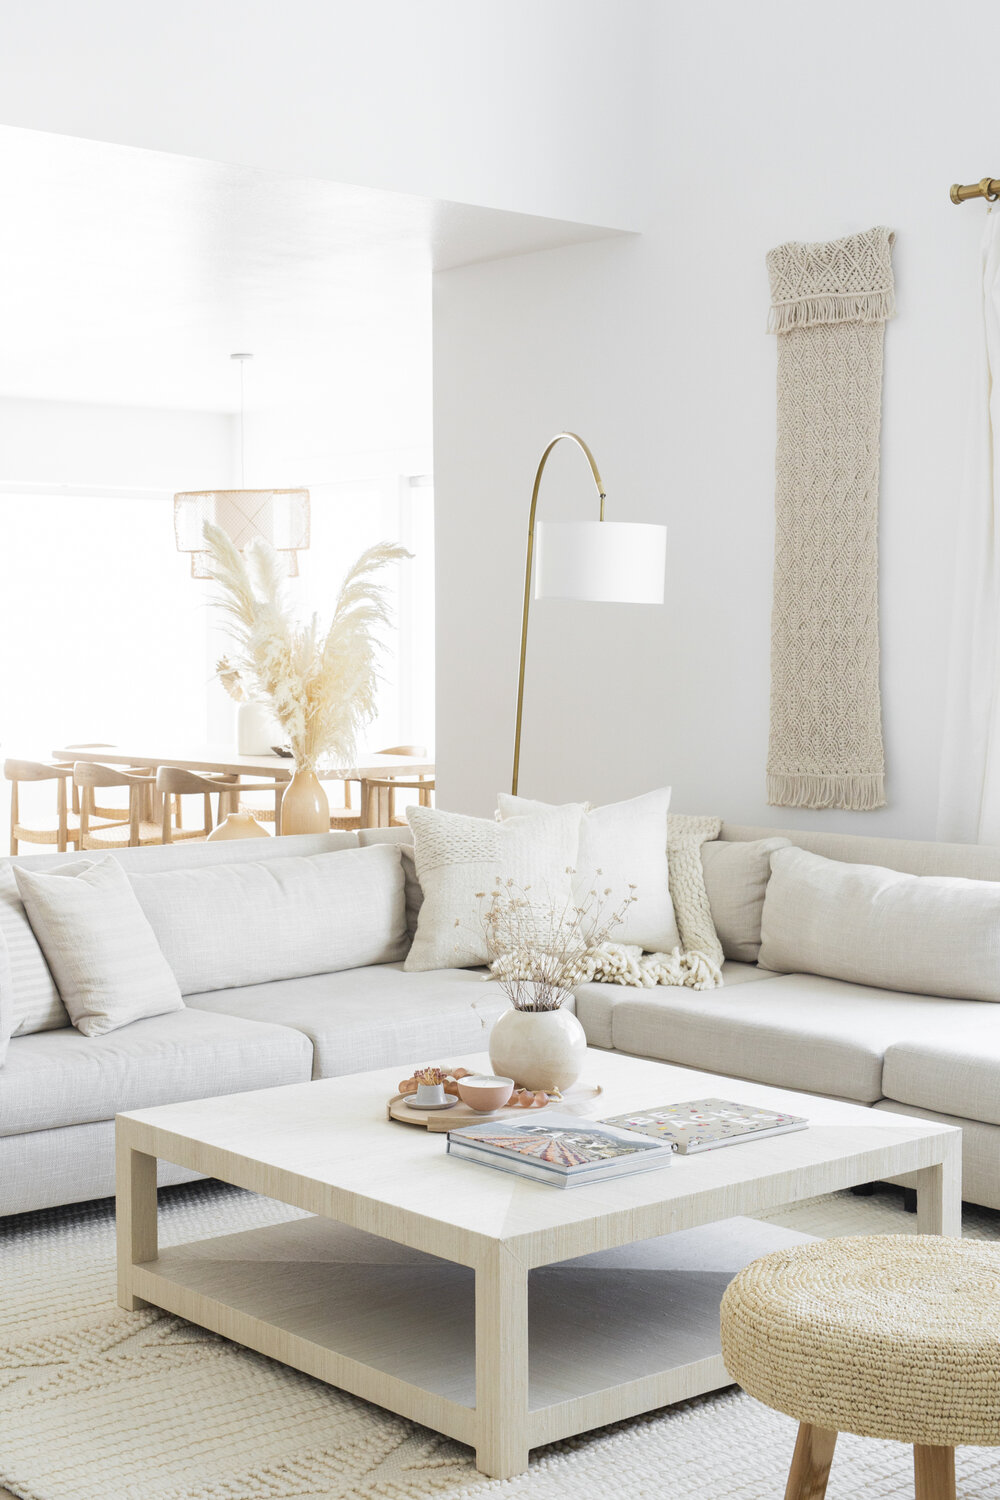 Aspyn Ovard S Home Remodel Ames Interiors